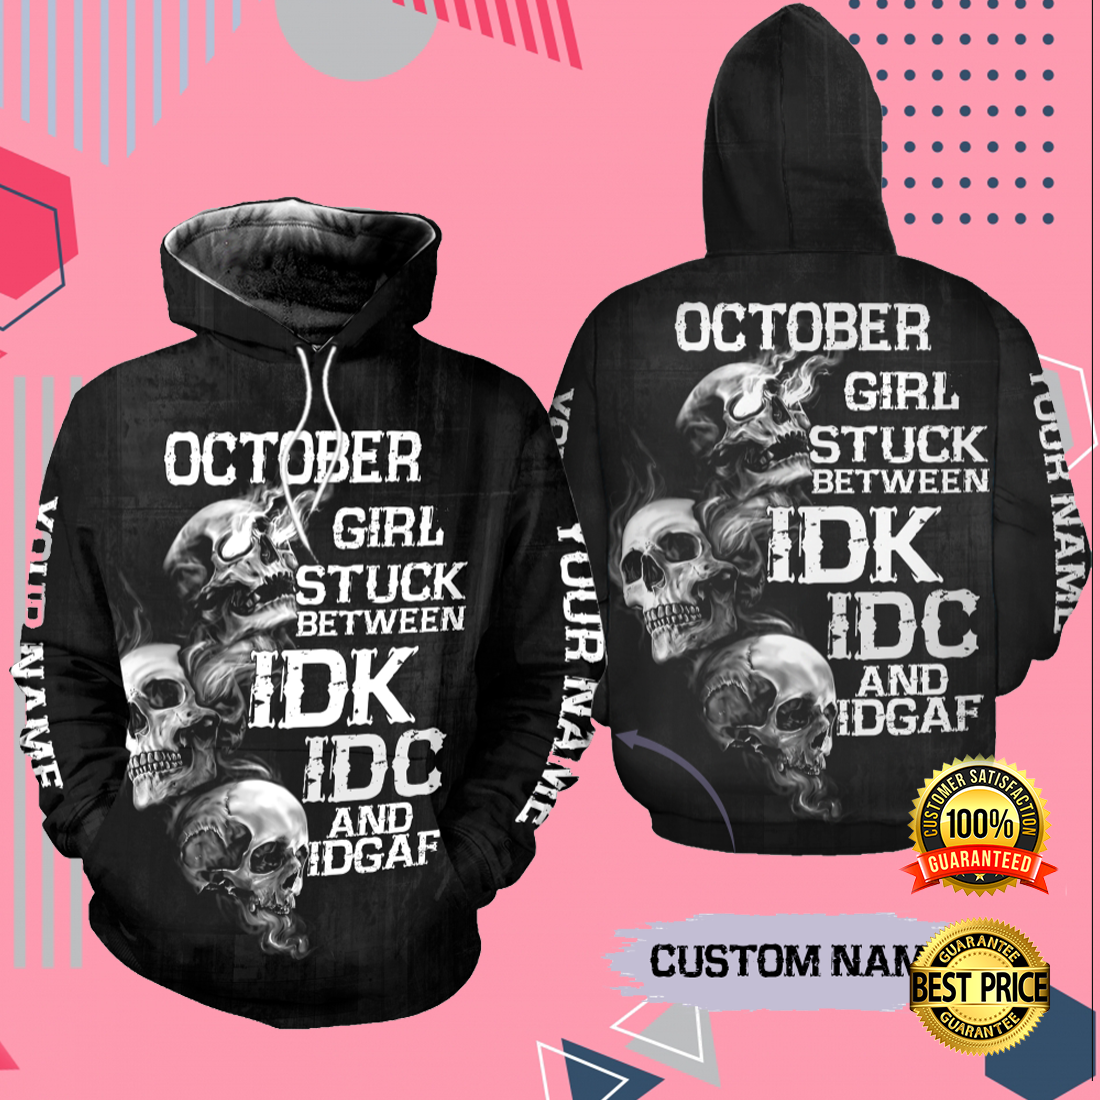 October girl stuck between idk idc and idgaf all over printed 3D hoodie 3